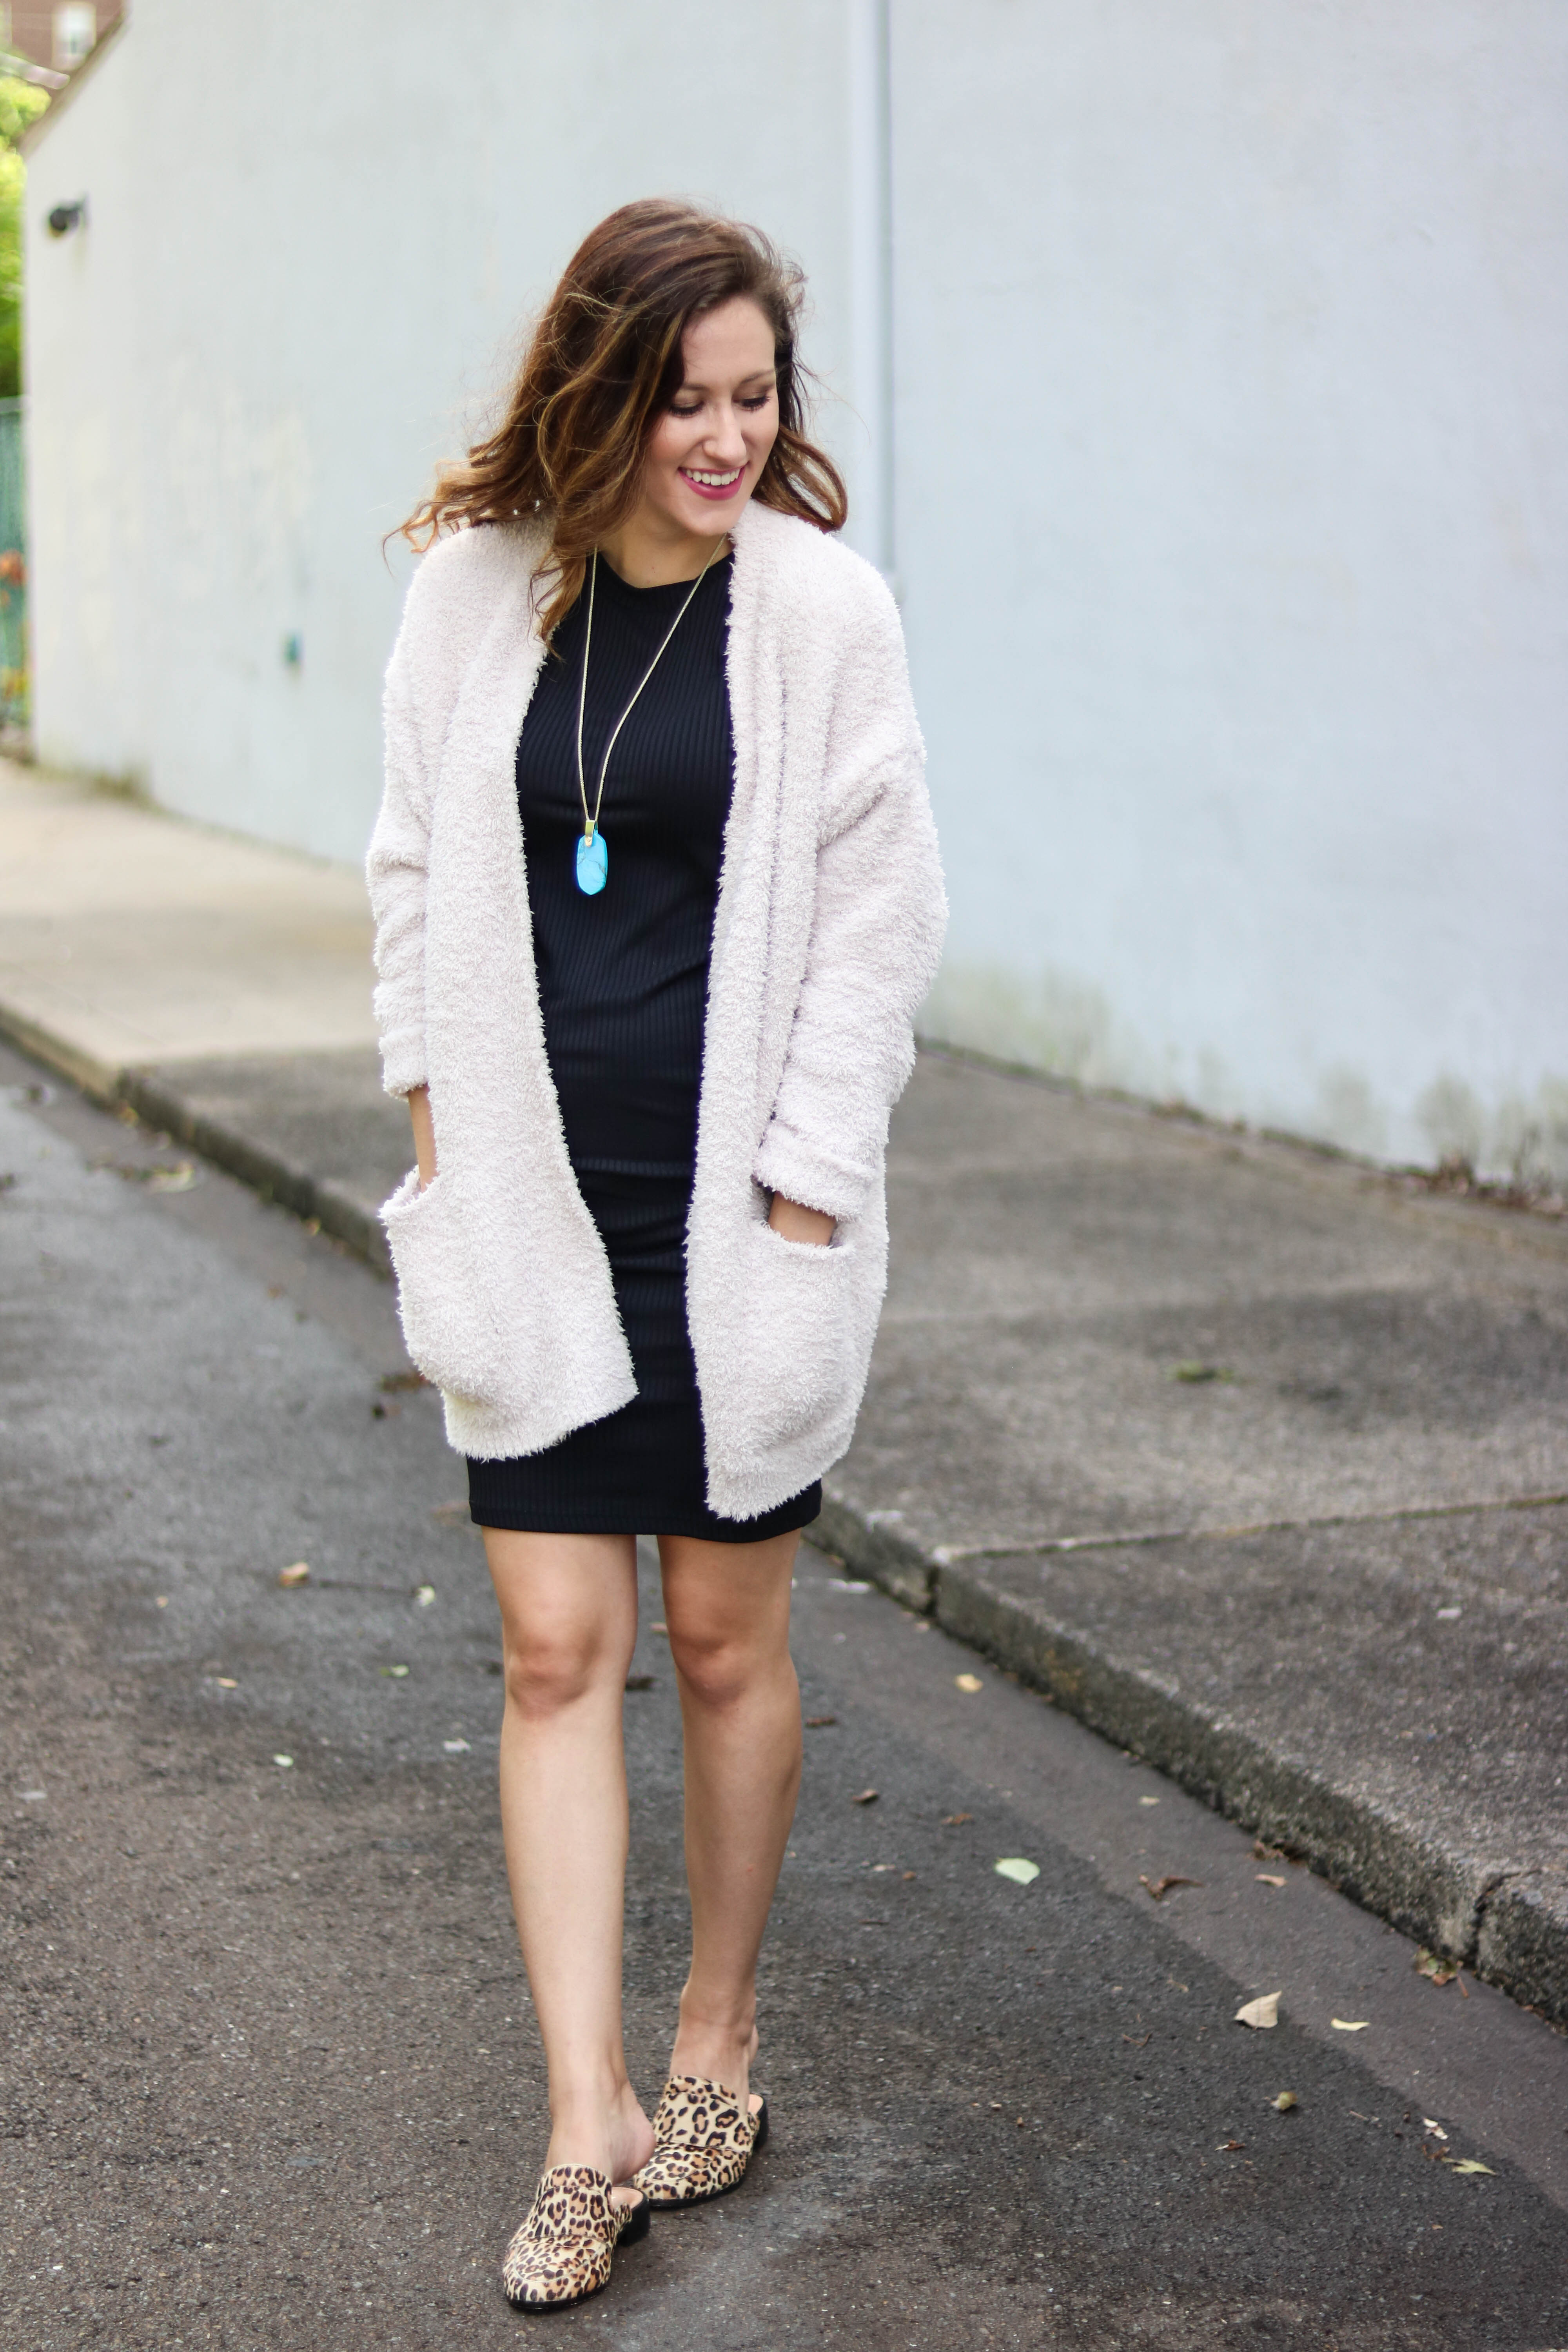 1 Thing, 3 Ways: Barefoot Dreams Cardigan. Philadelphia style blogger, Erica of Coming Up Roses, styles this on sale Barefoot Dreams Cardigan three different ways for transitioning to fall. Grab it while it's still on sale and in stock!